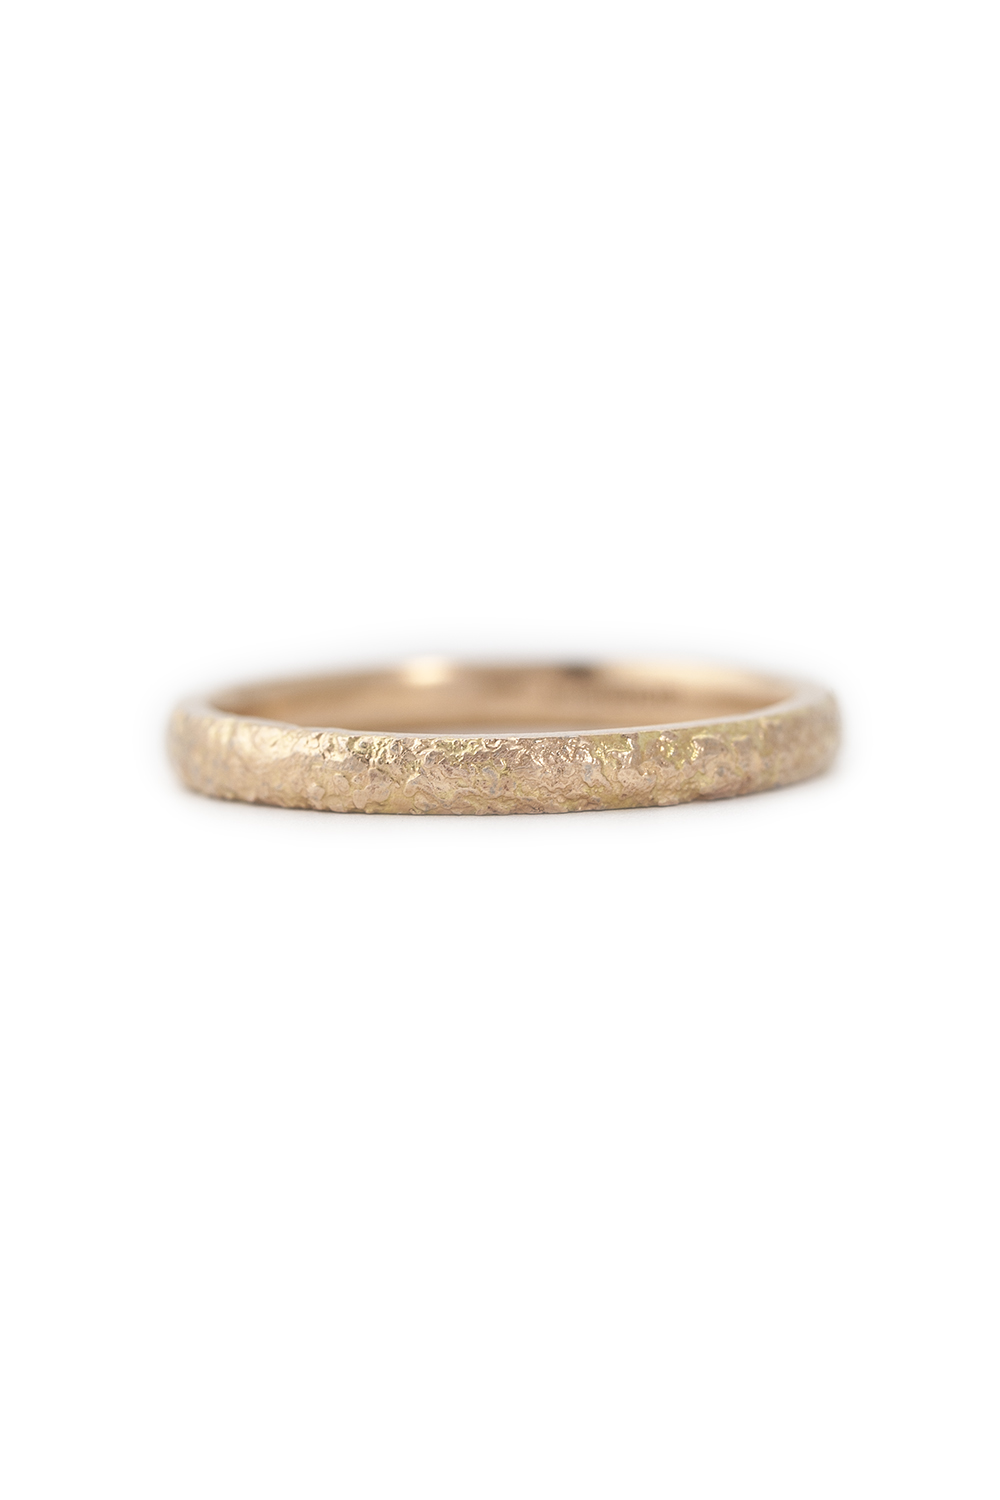 Gold dust fused ring in rose gold, £660